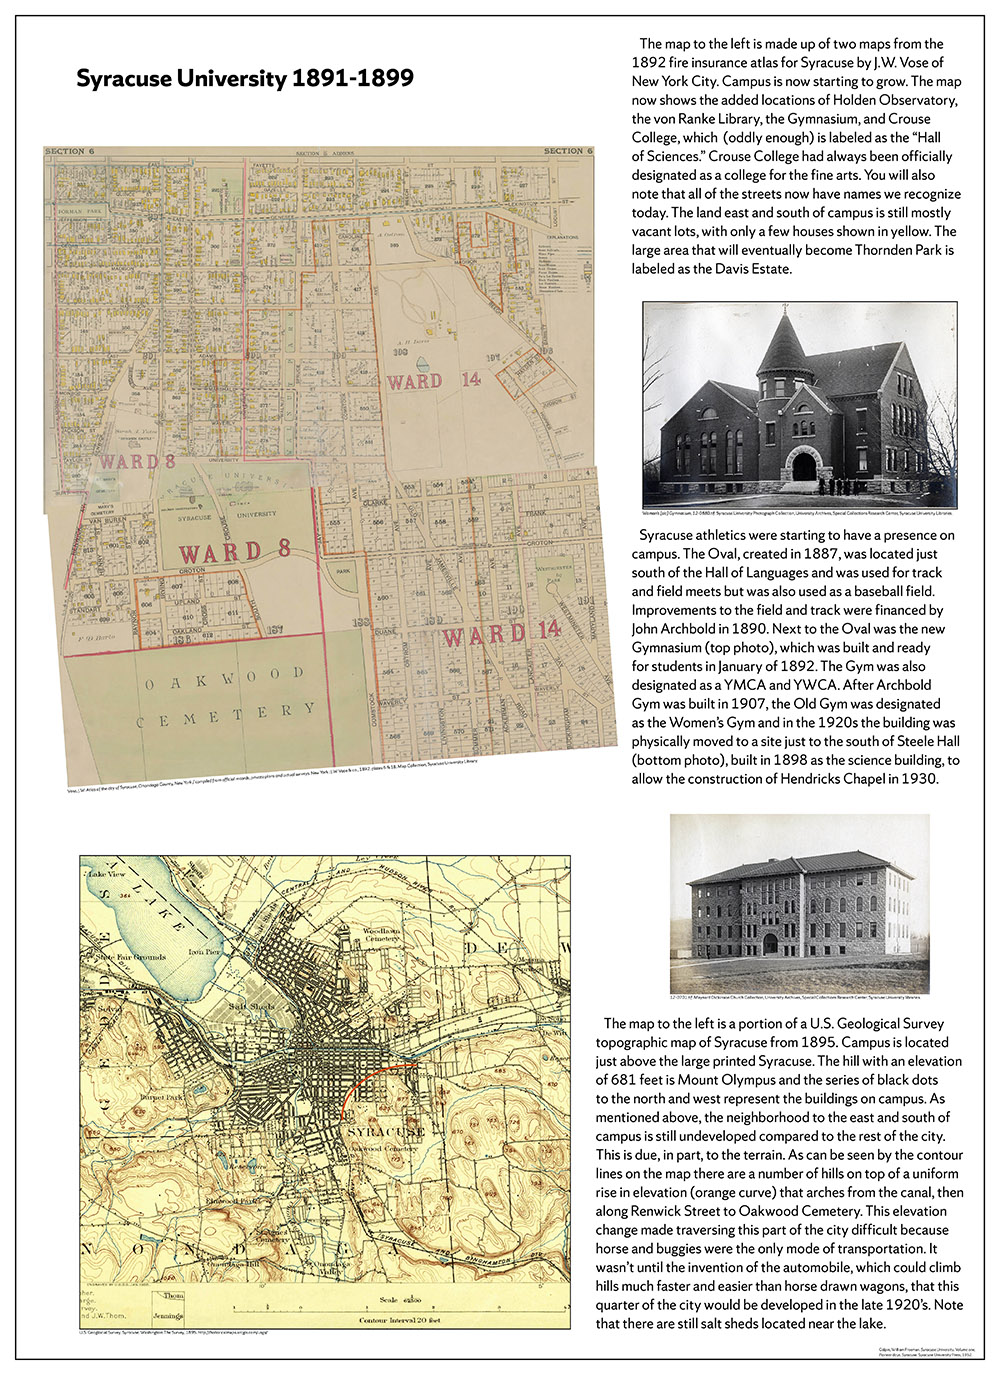 Syracuse University 150 years in maps – 1891-1899 poster